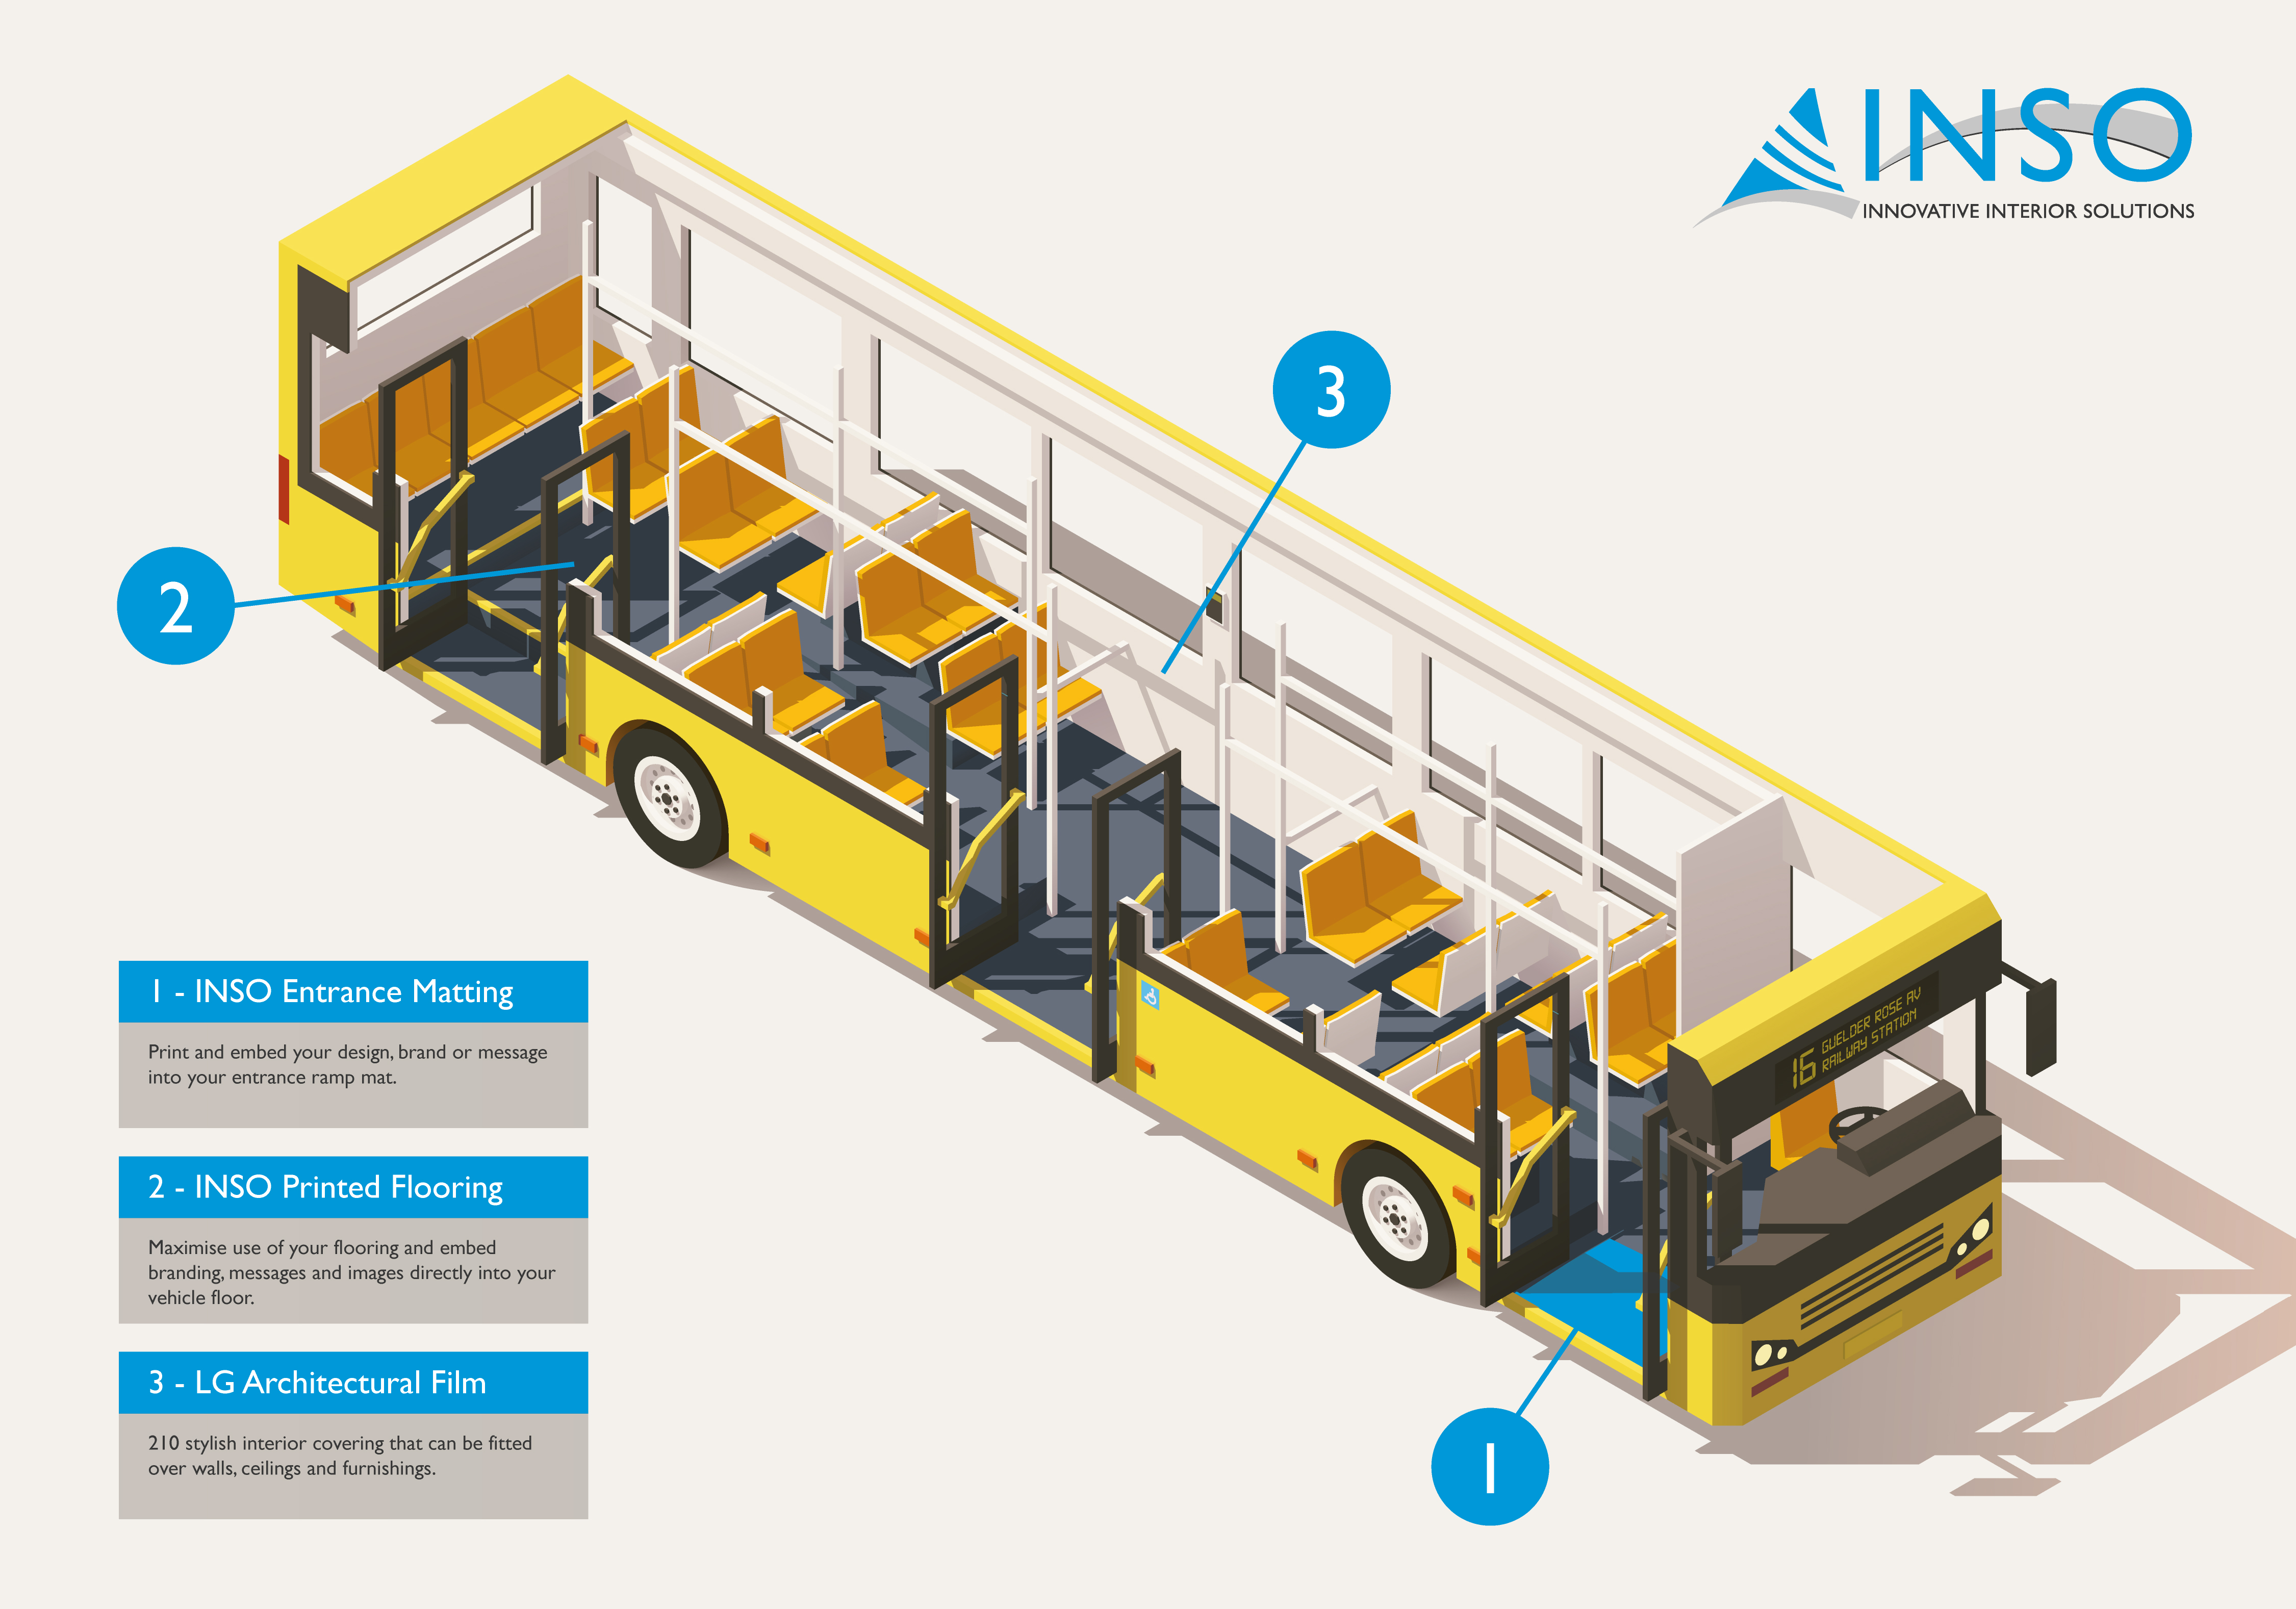 Diagram showing usage of INSO Entrance matting, printed flooring and LG Architectural film in a bus